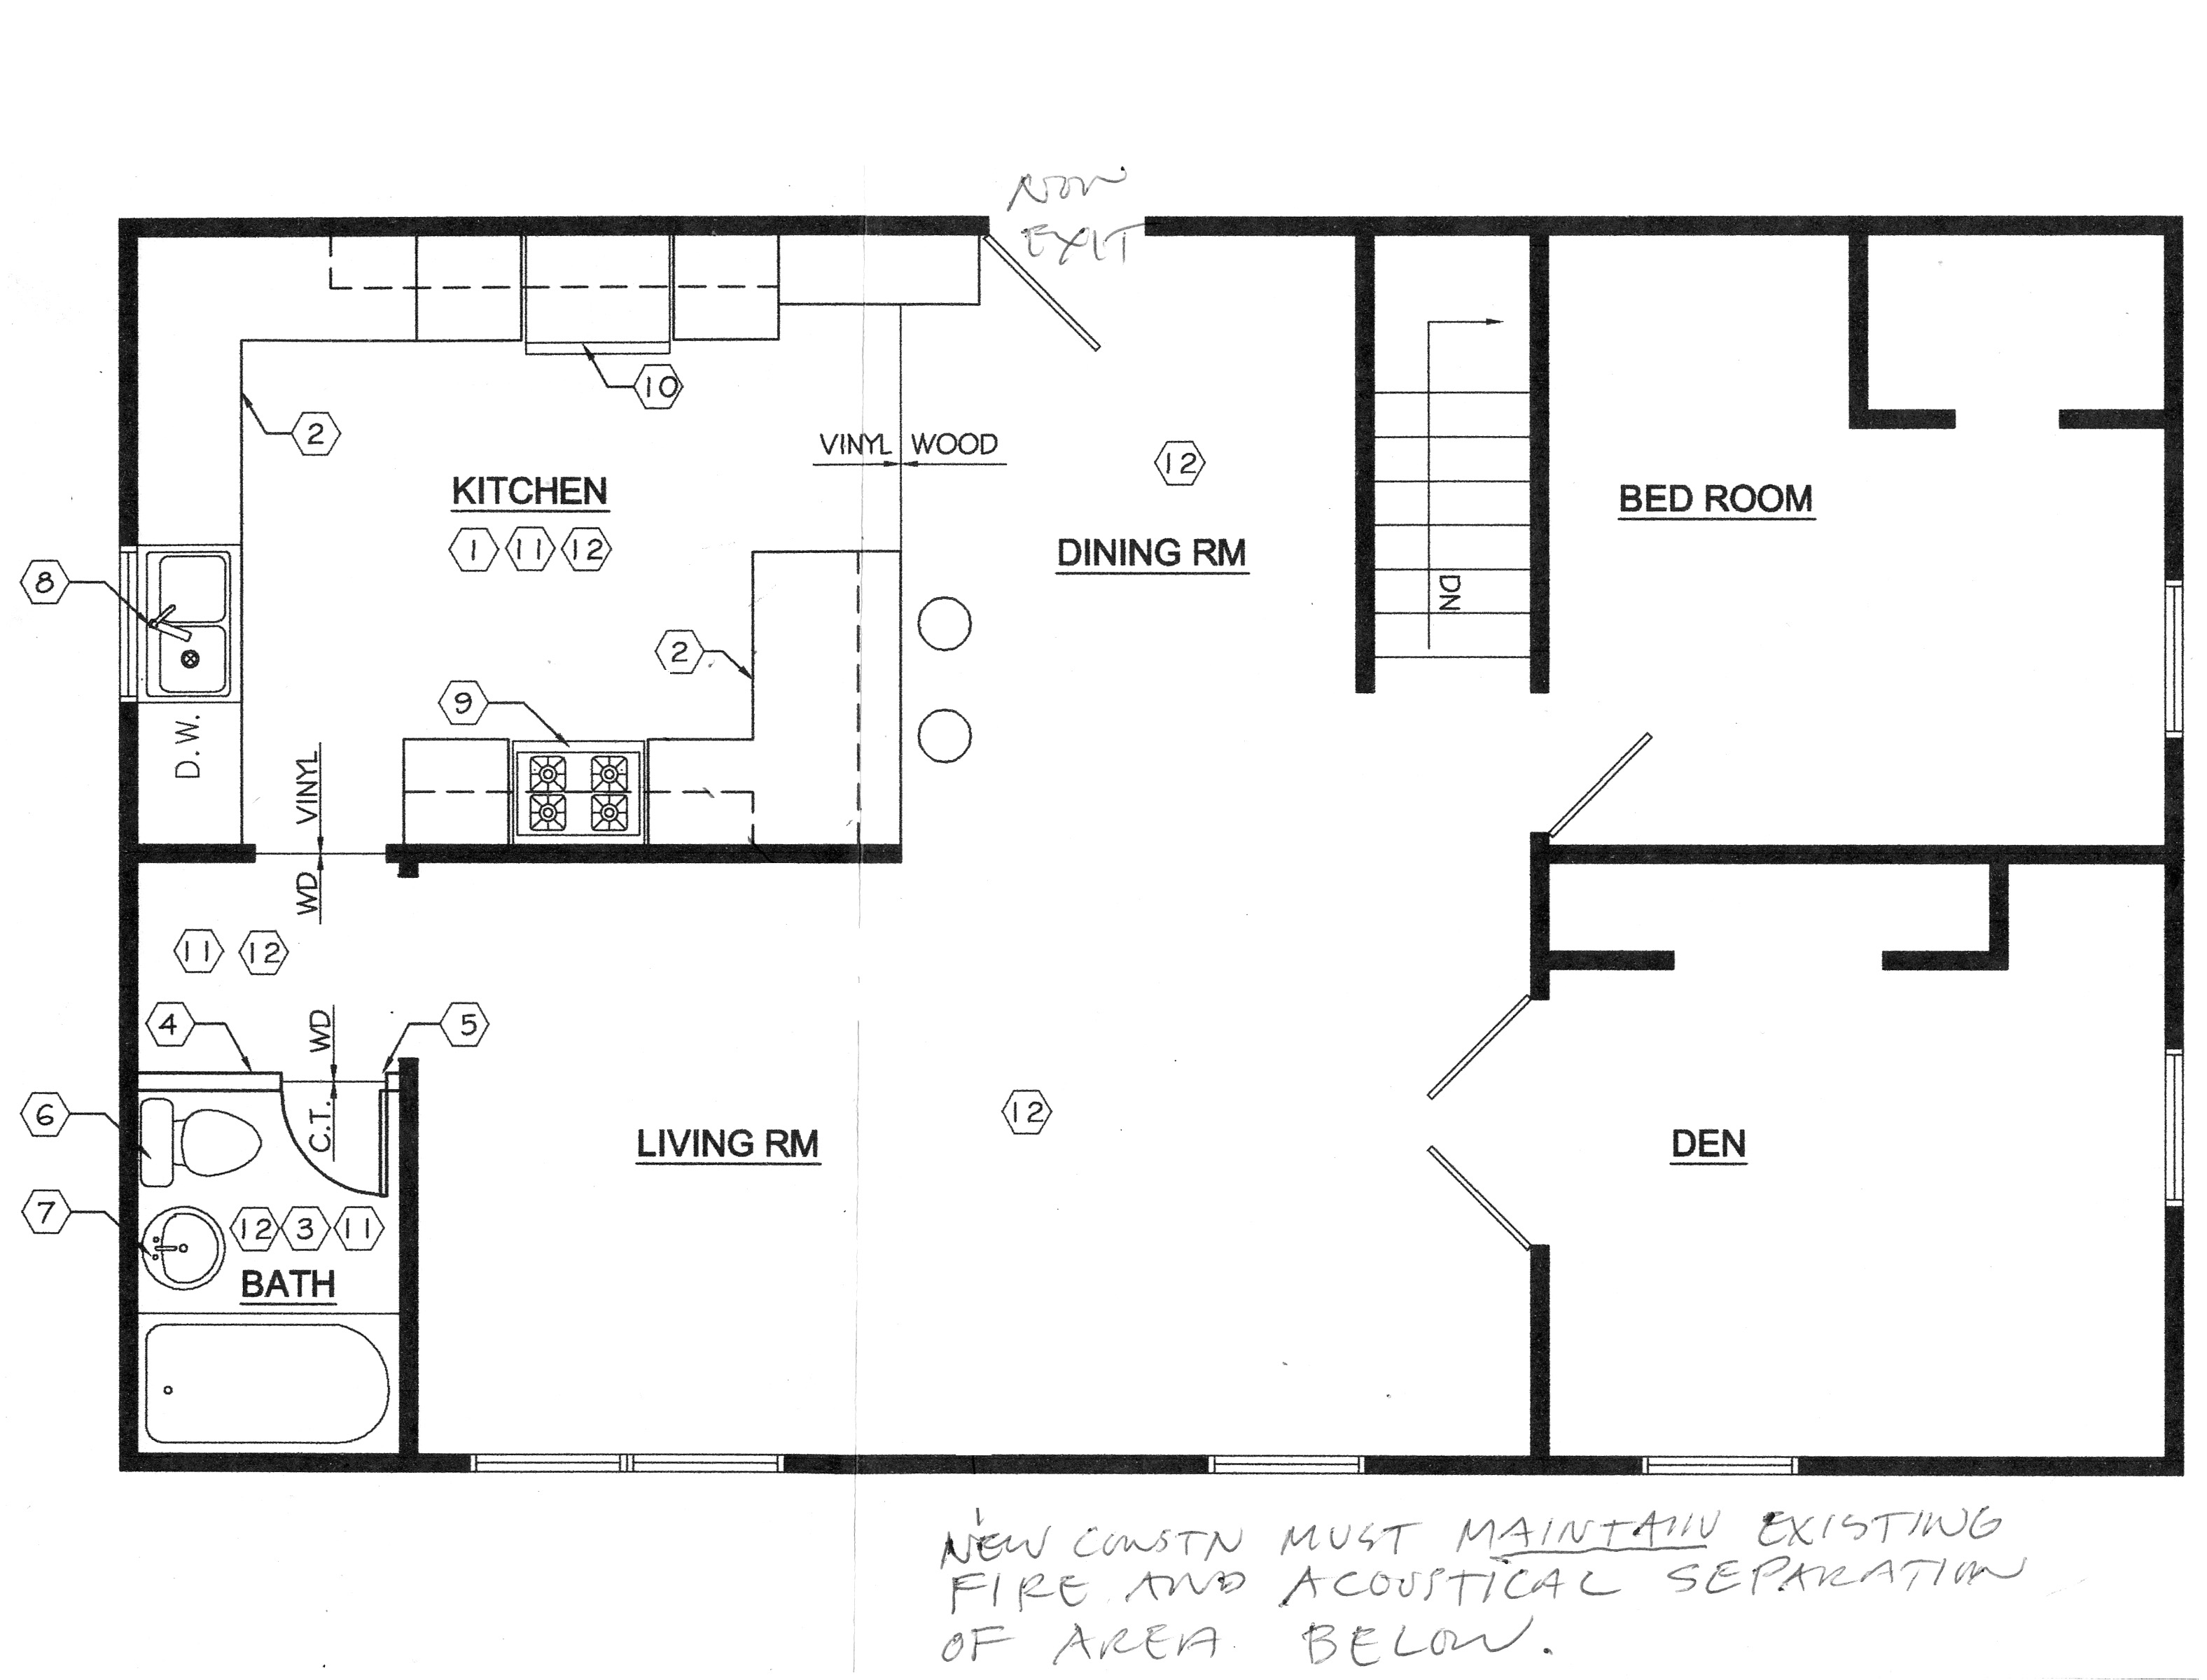 Floor plans this odd house - Small kitchen floor plans ...